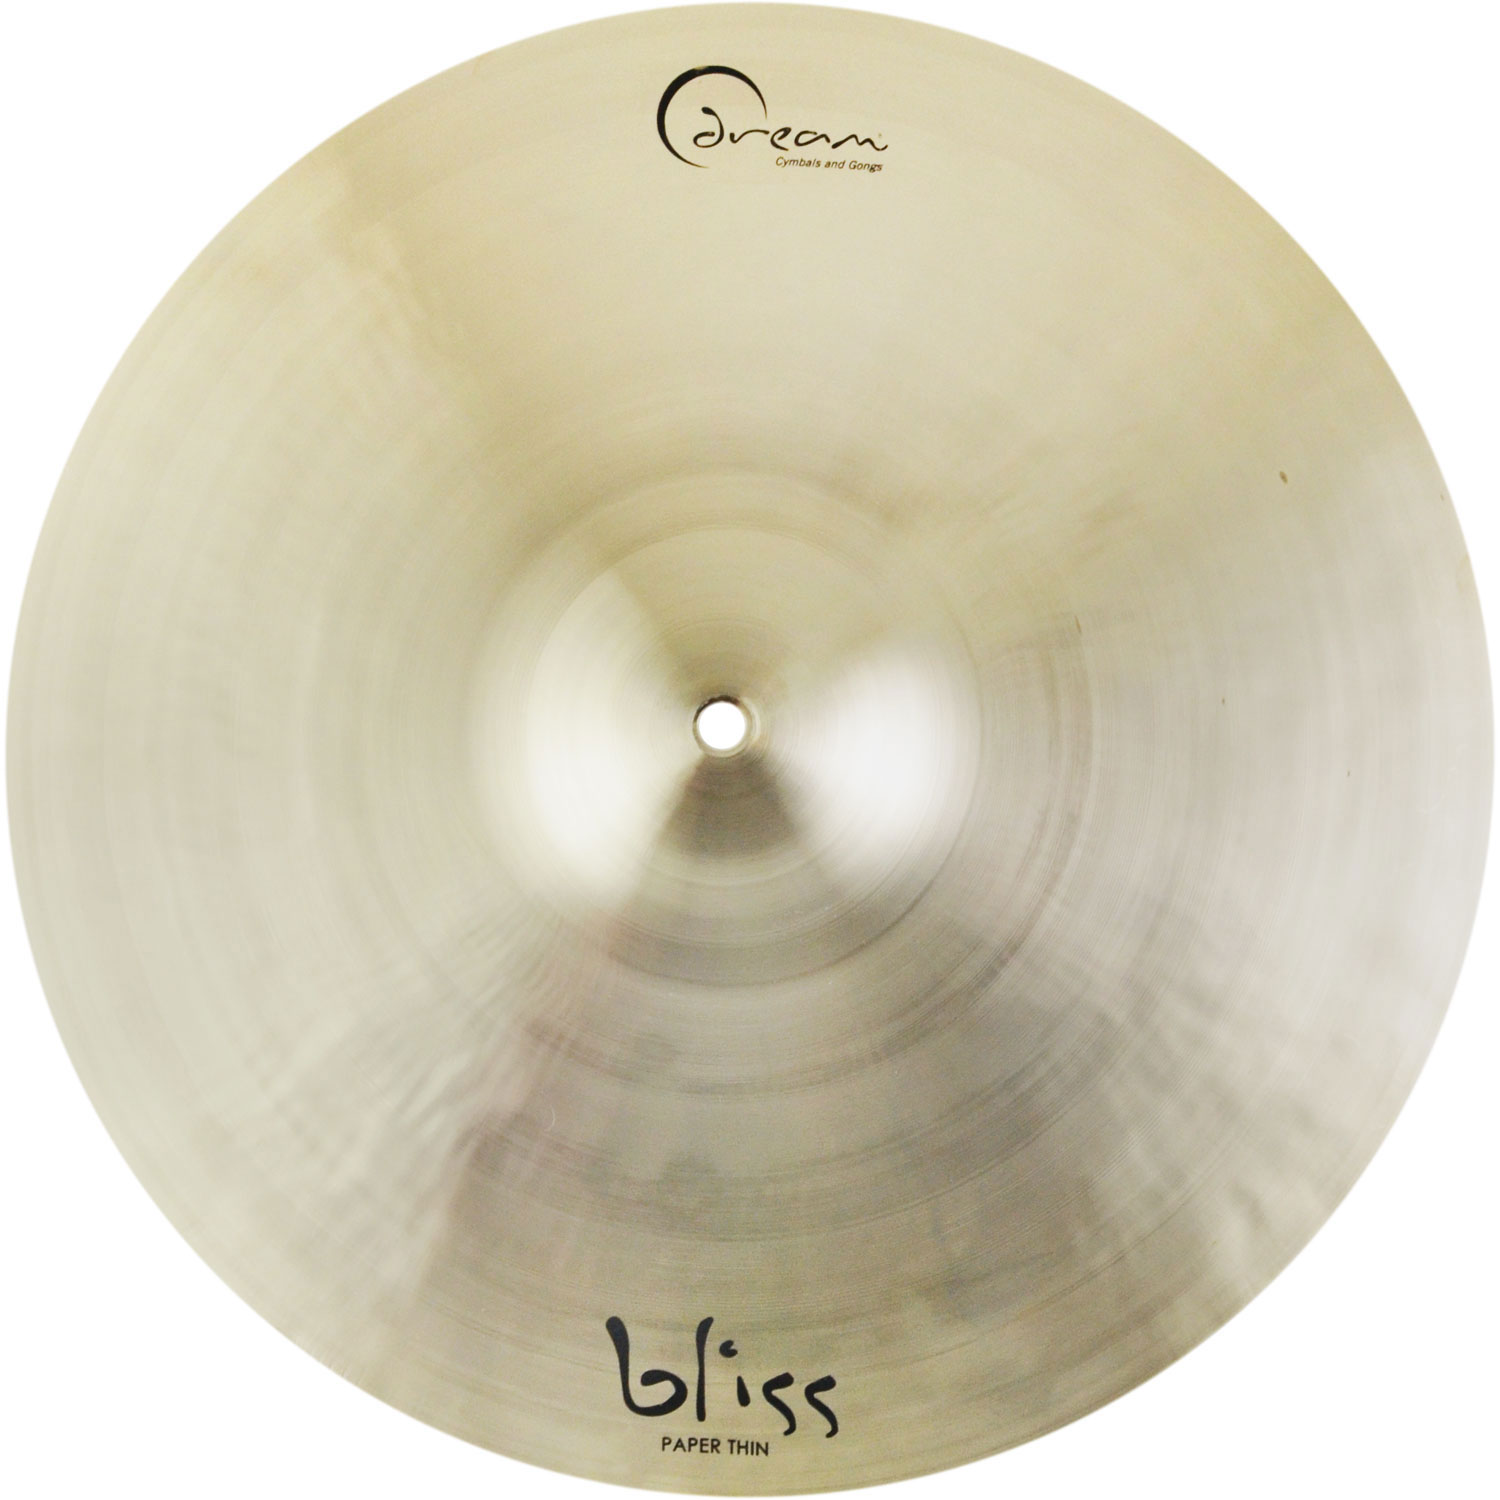 "Dream 16"" Bliss Paper Thin Crash Cymbal"